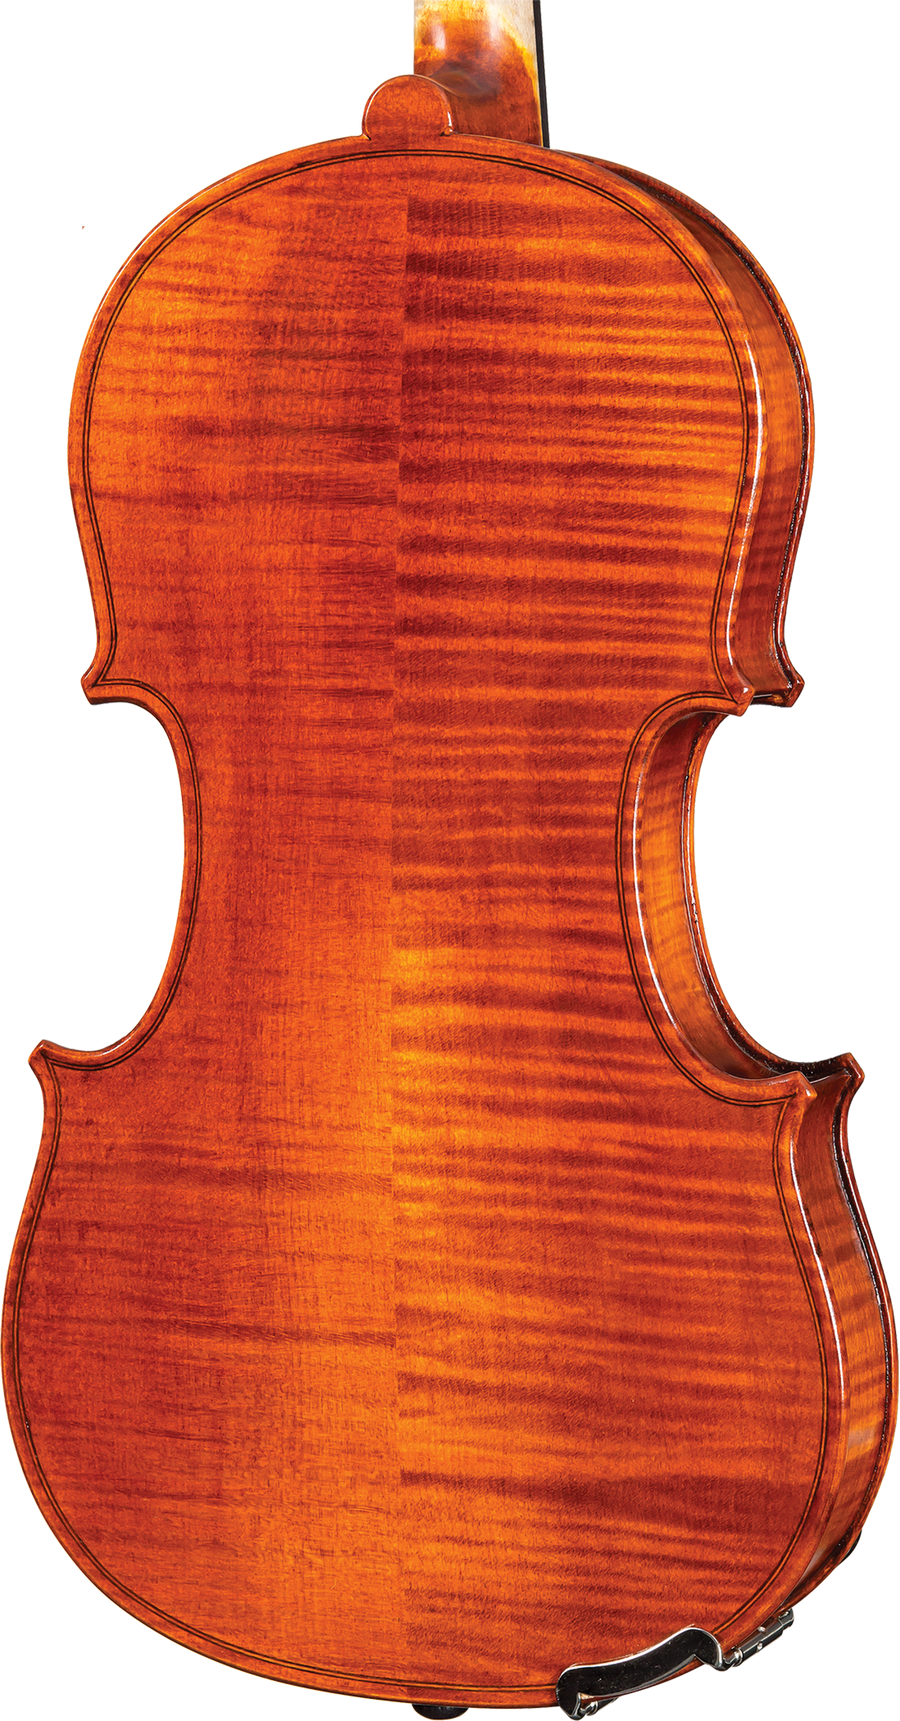 Howard Core A14 Student Violin Outfit